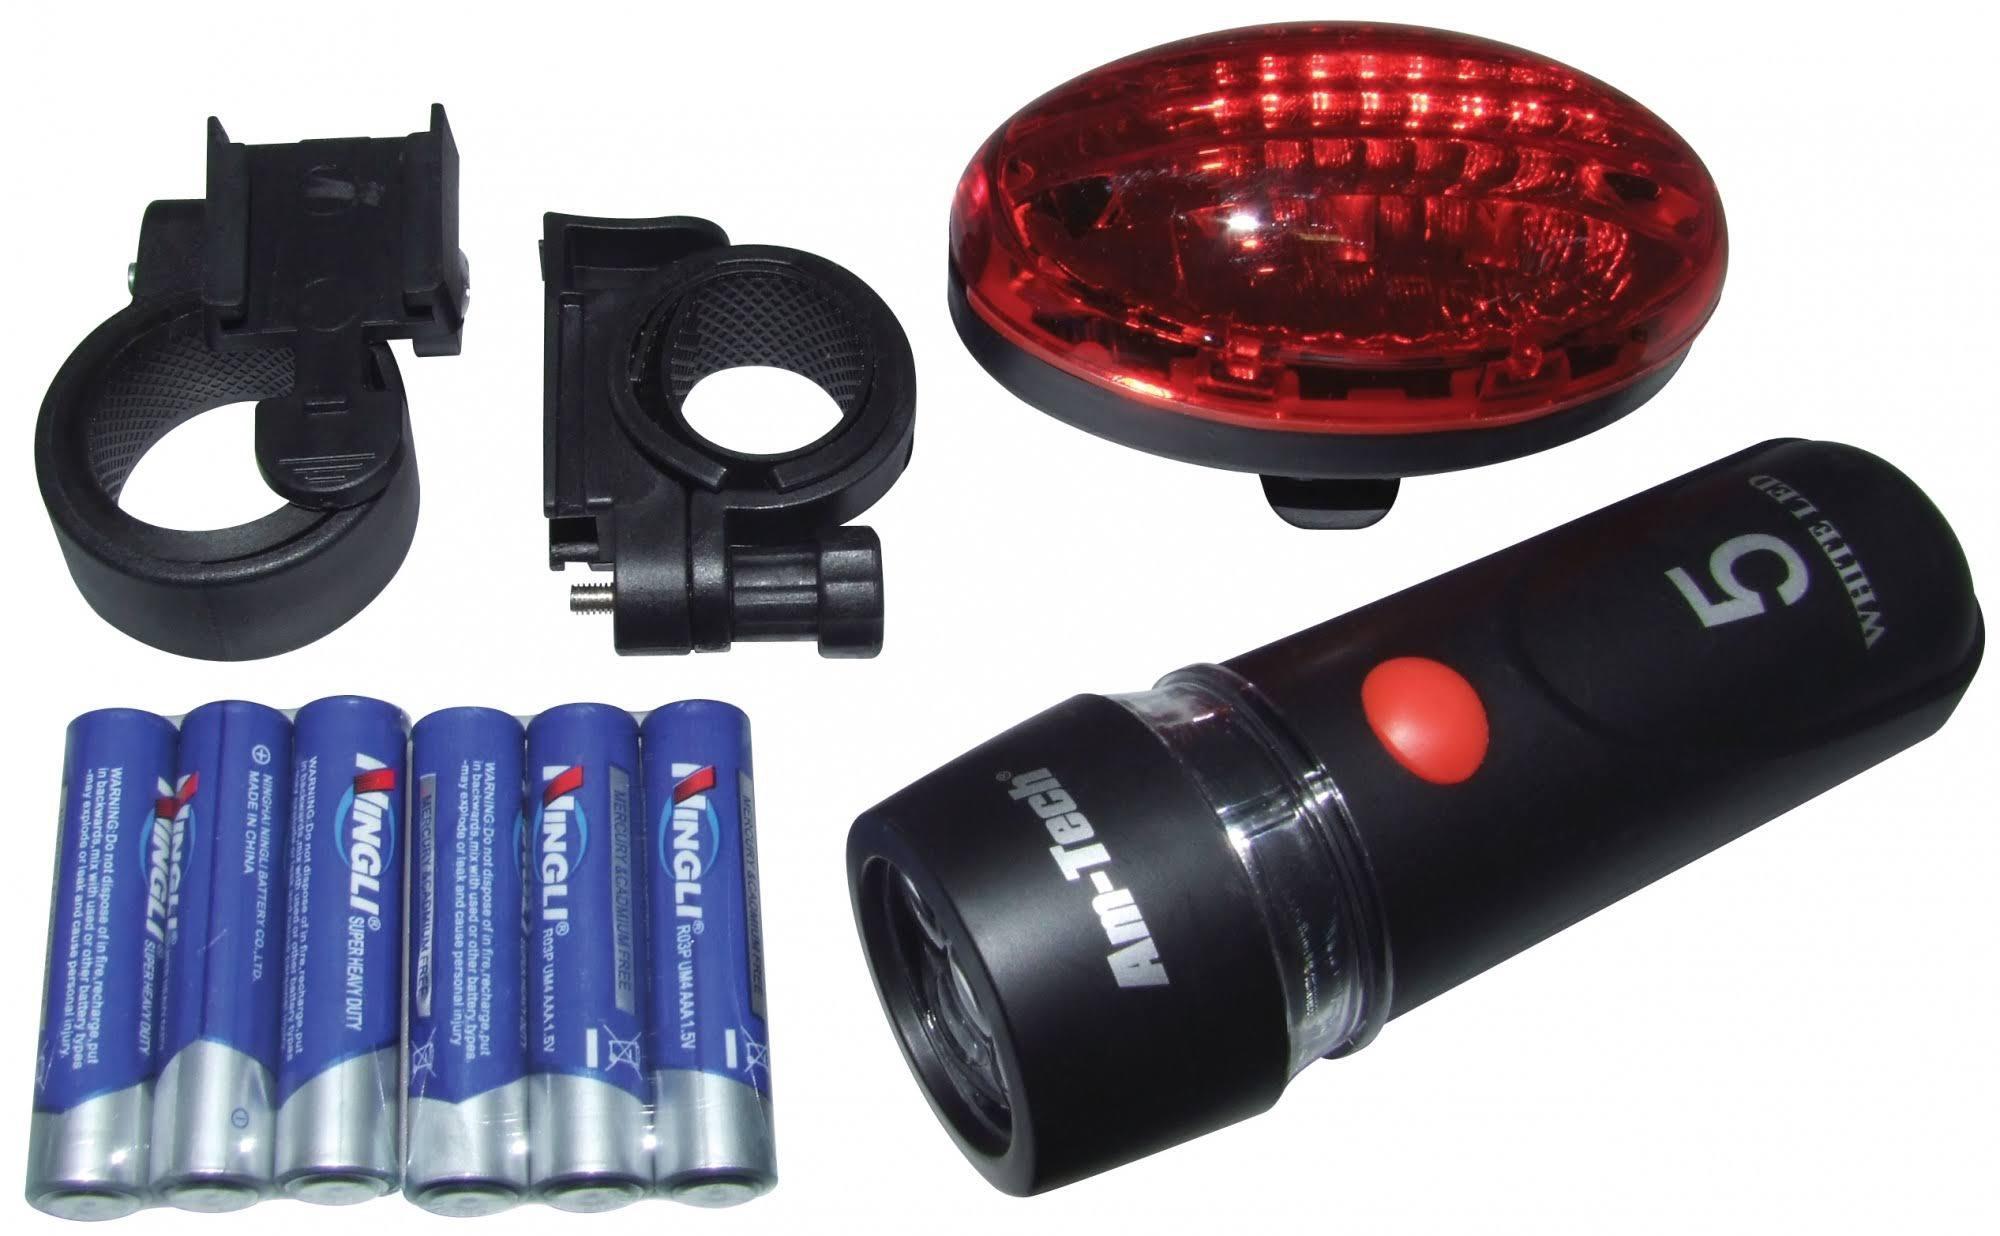 Amtech LED Front & Rear Bicycle Light Set | S1826